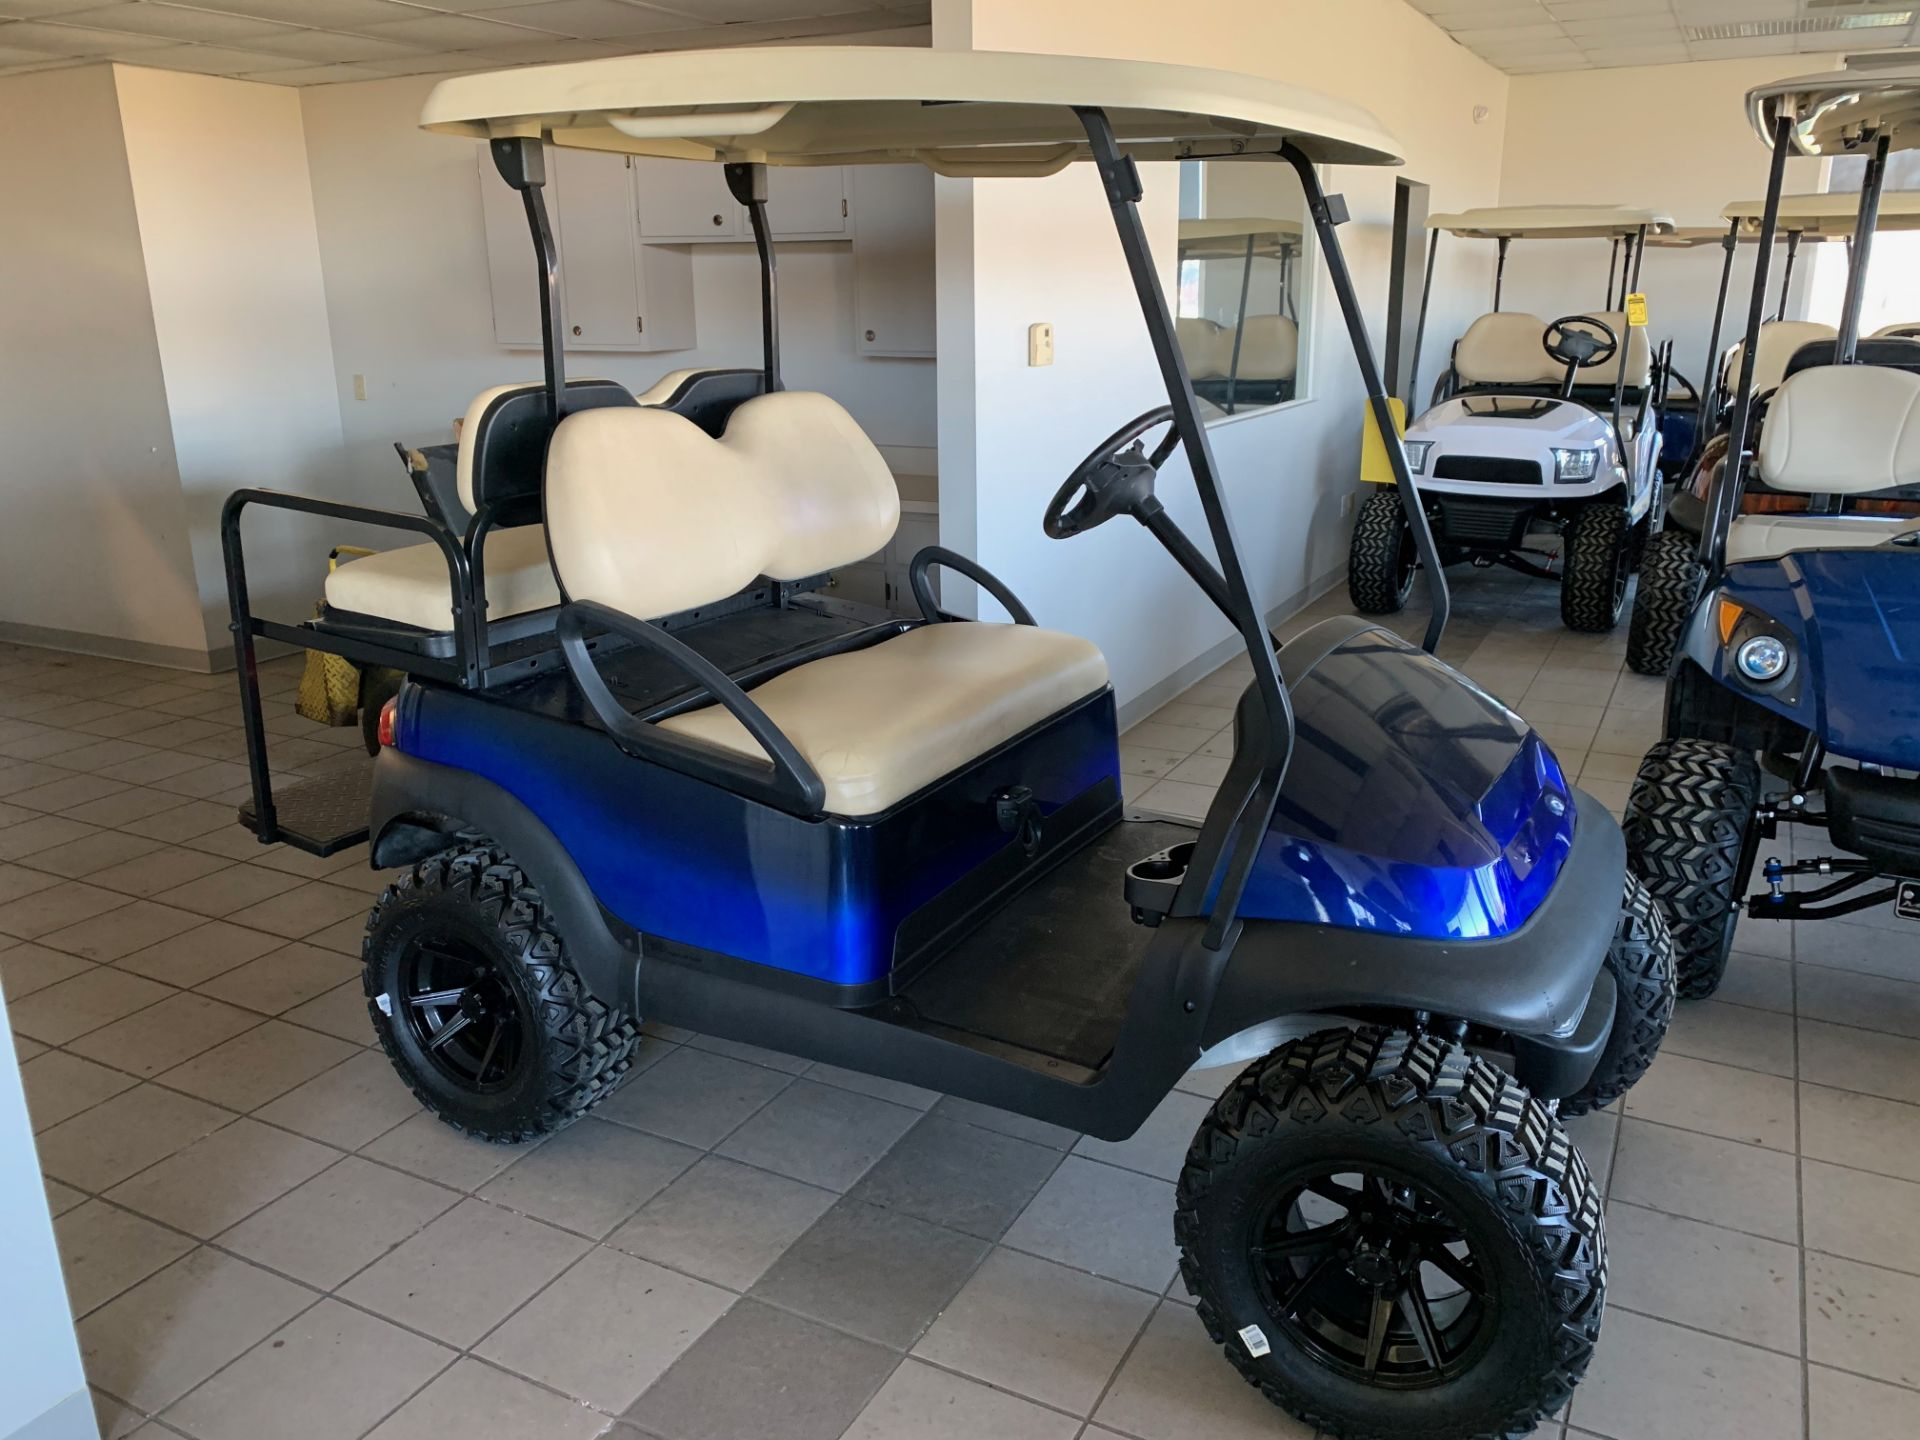 Lot 22 - 2014 CLUB CAR PRECEDENT ELECTRIC GOLF CART, WITH 48V CHARGER, 4-PASSENGER FOLD DOWN SEAT, LIFT KIT